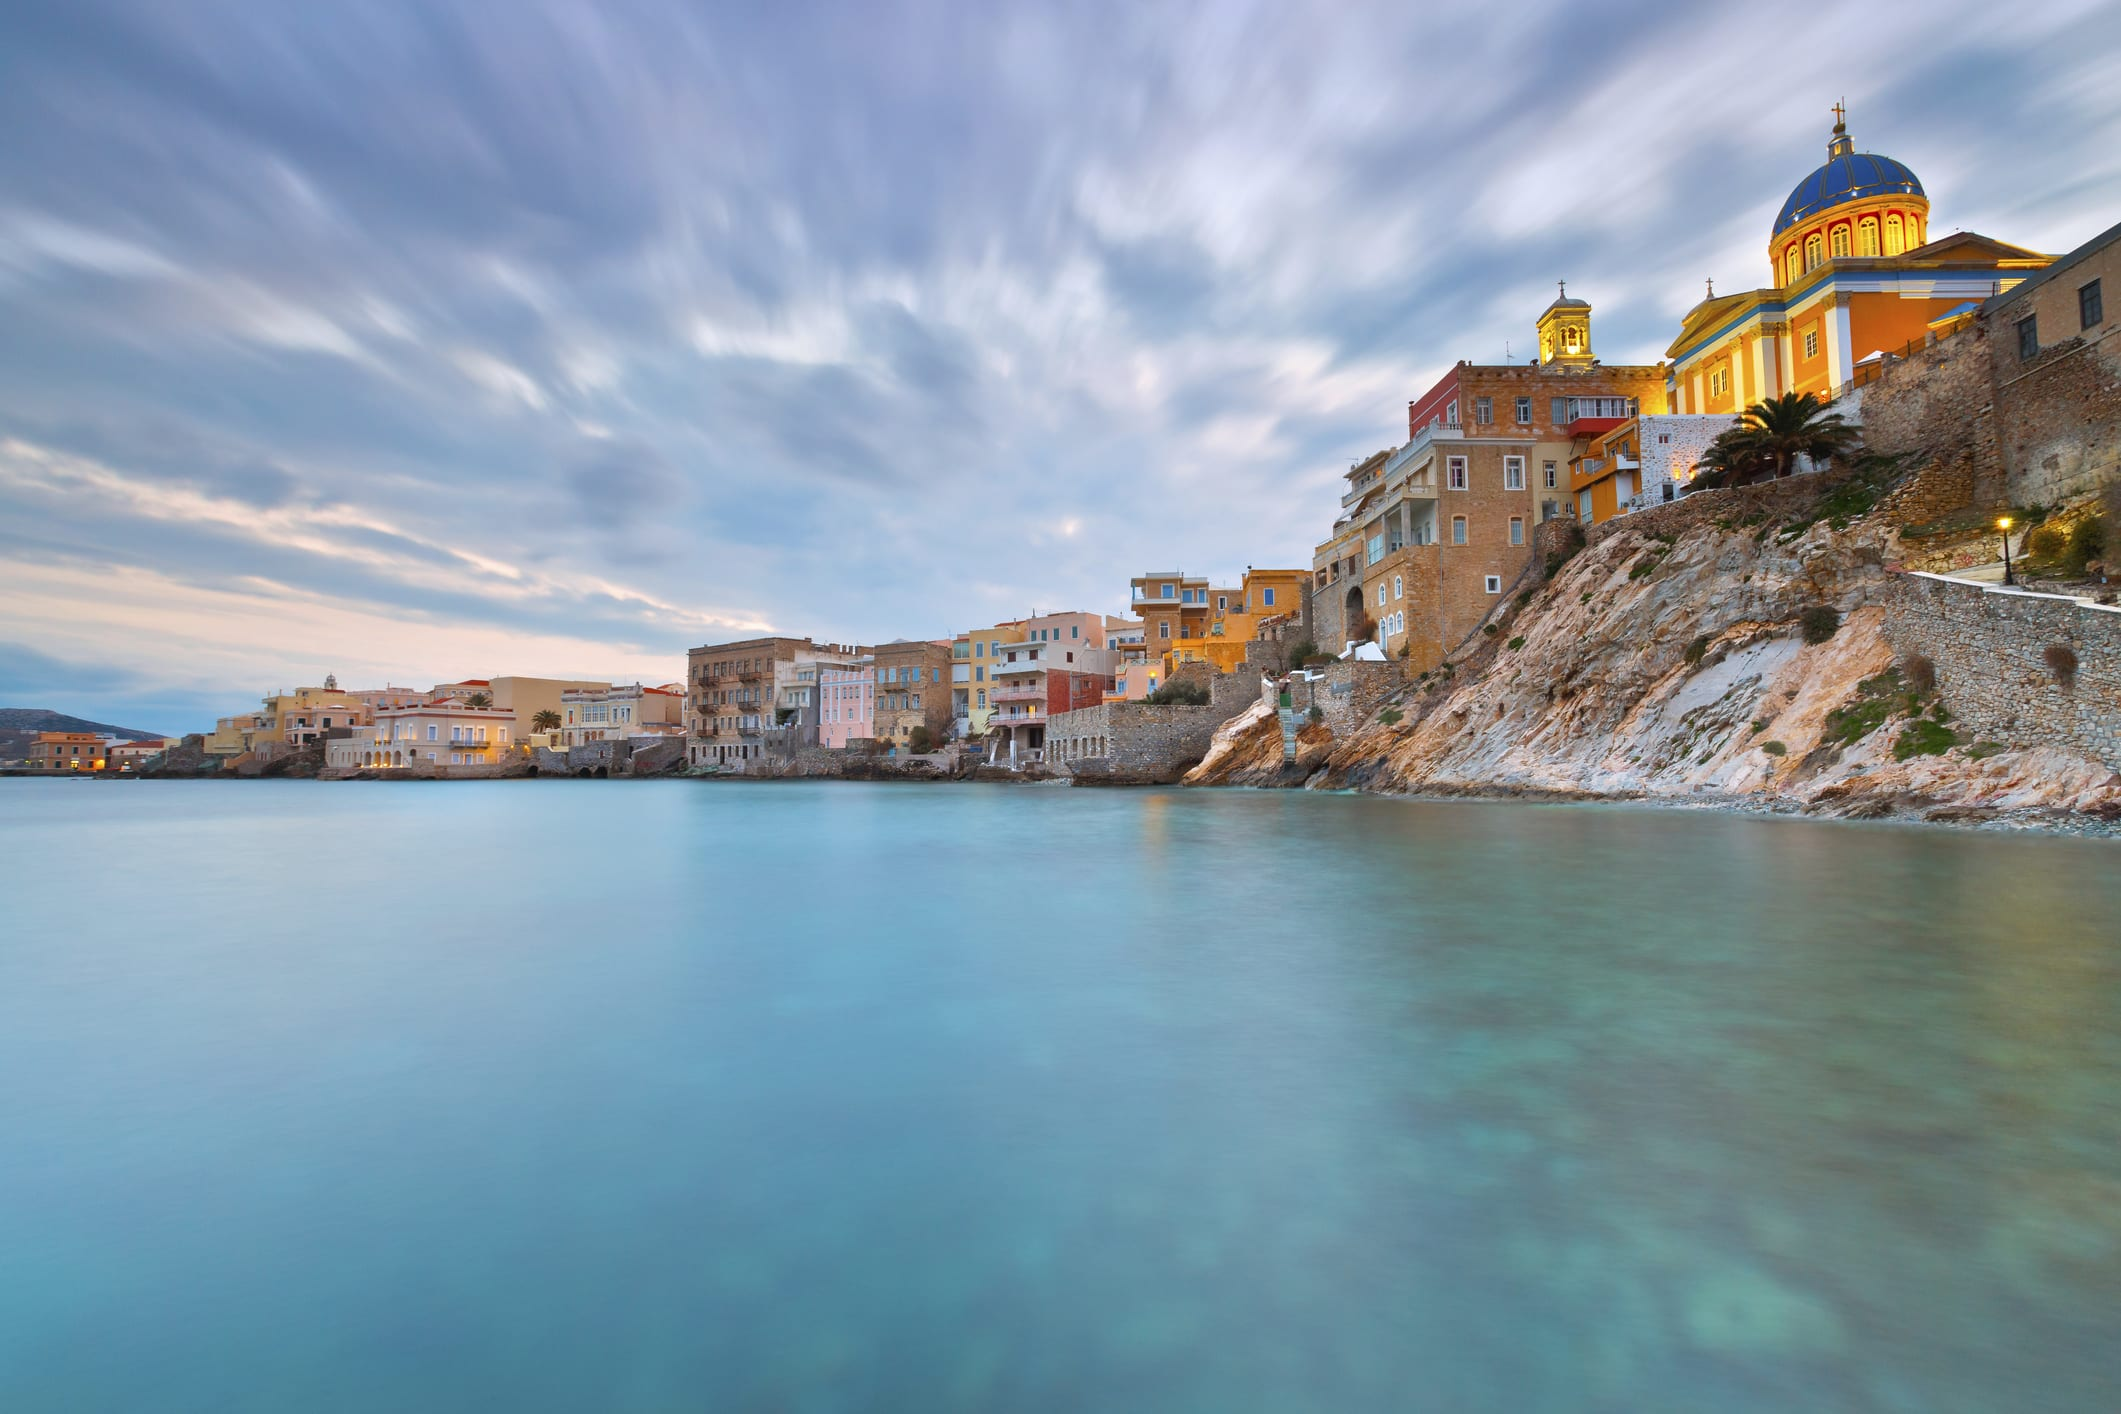 Headed to Europe? Here are 5 smaller destinations with fewer crowds